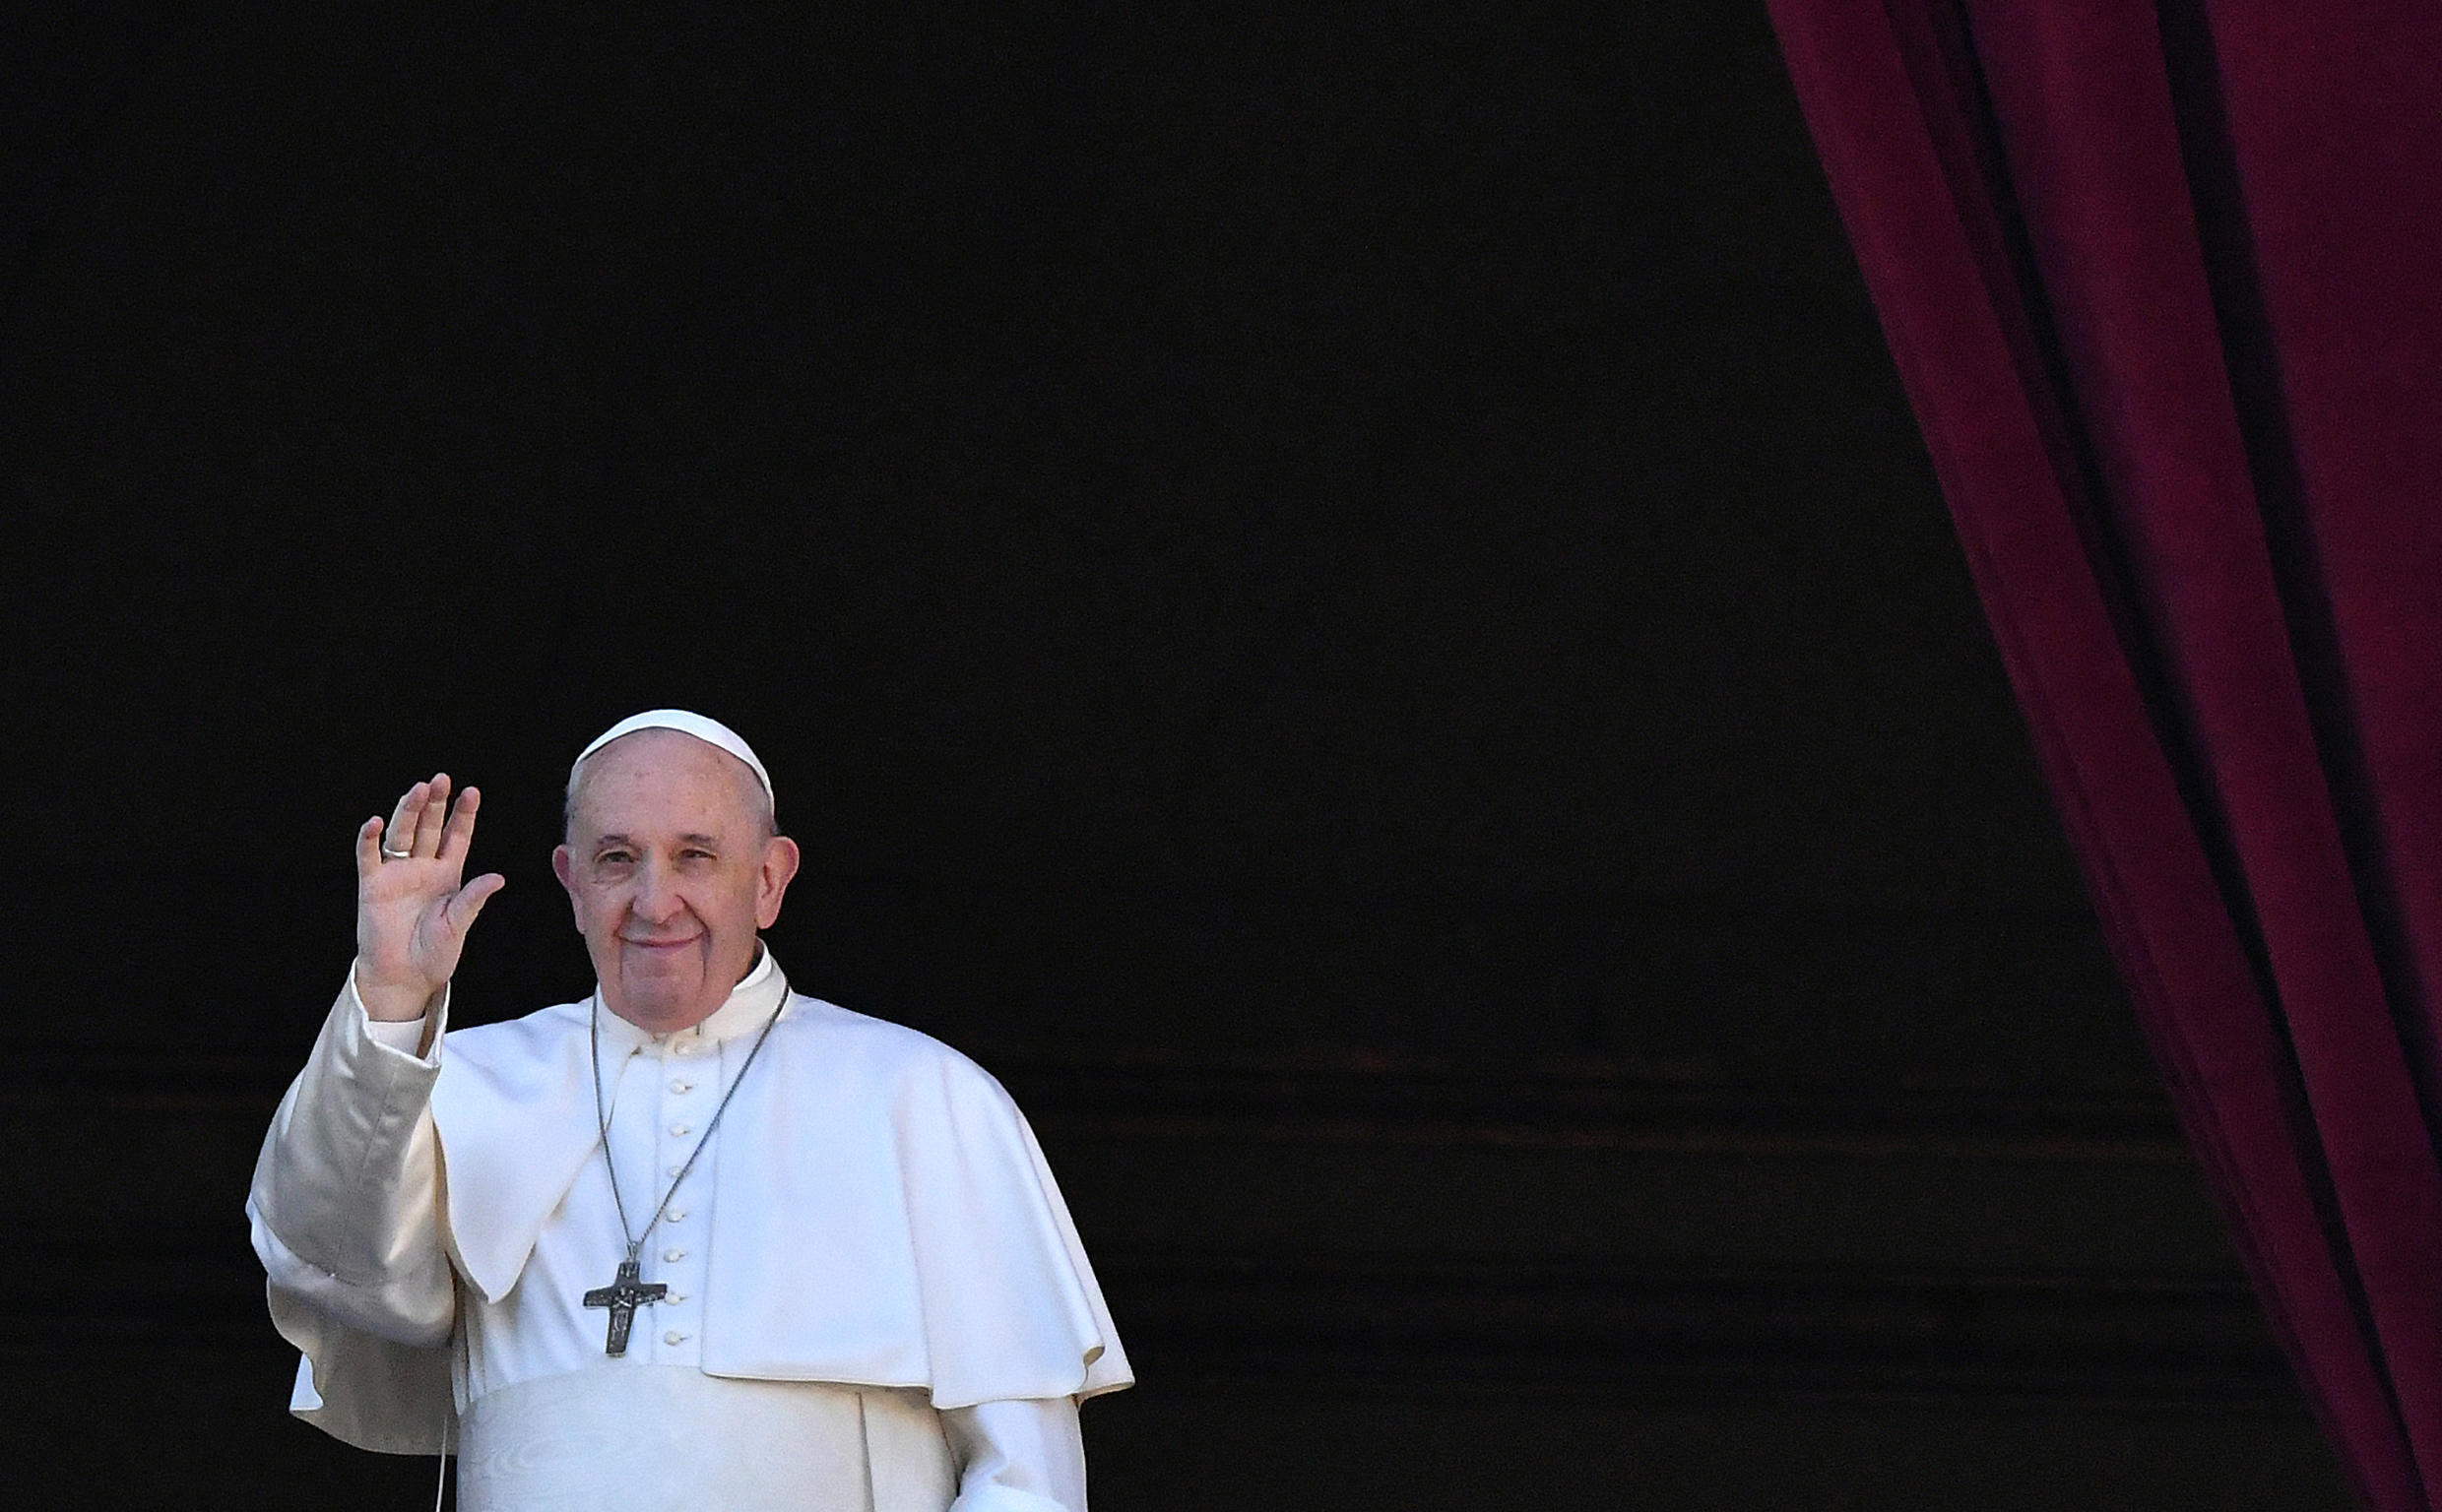 """In the film """"Francesco"""" by Evgeny Afineevsky, which premiered at the 2020 Rome Film Festival, Pope Francis says that gay people have """"the right to be in a family"""""""